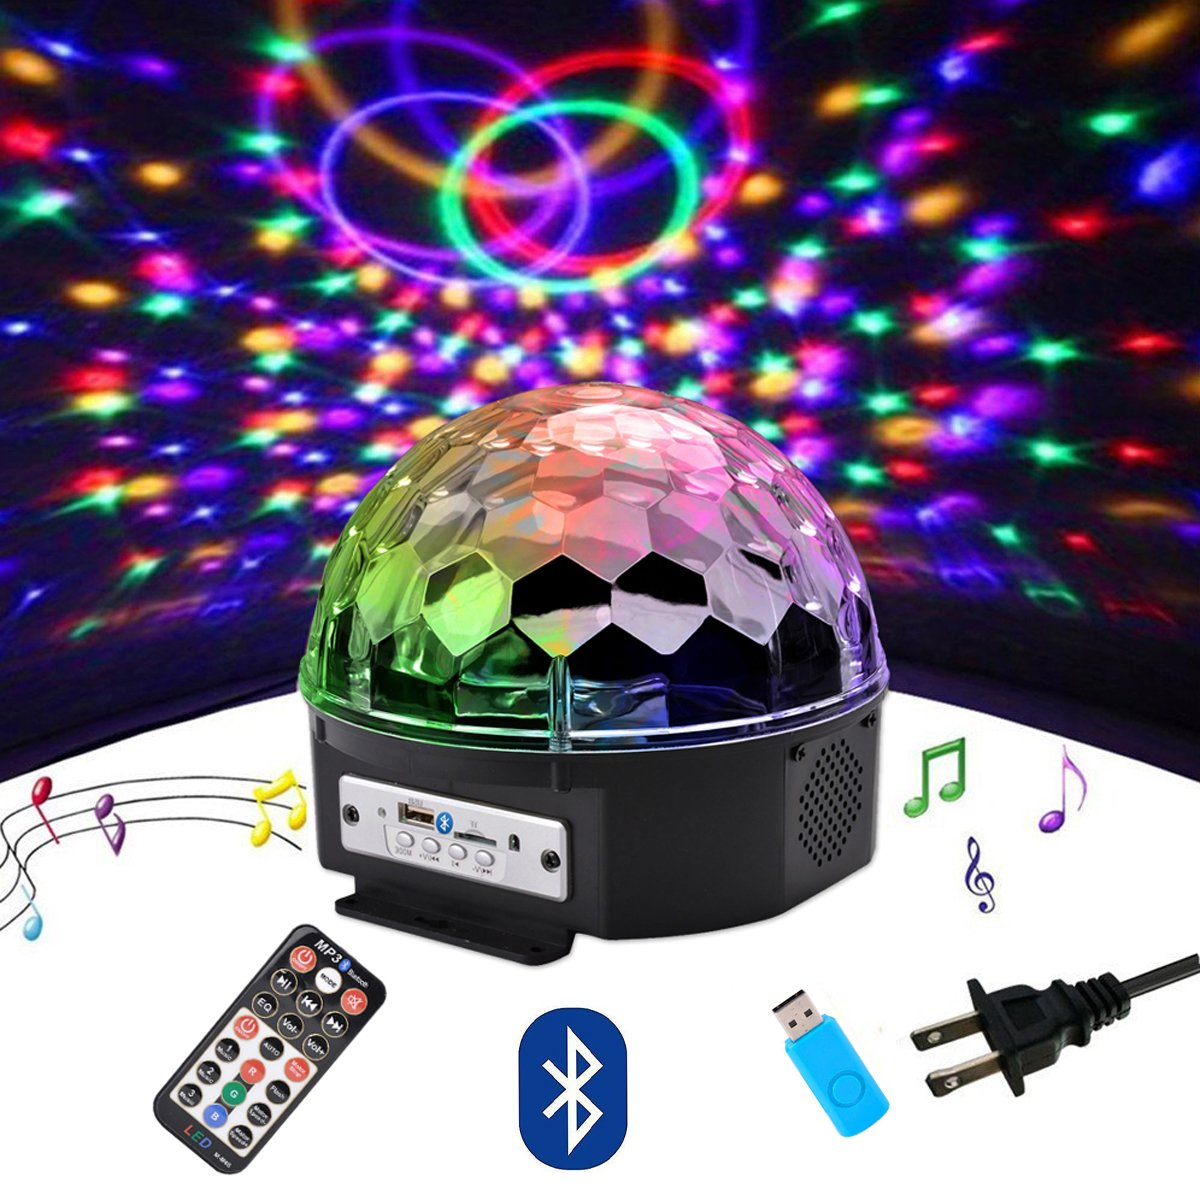 Outgeek DJ Lights, 9 Color LED Bluetooth Stage Lights DJ Stage Lighting Rotating Crystal Magic Ball Light Sound Activated Light with Remote Control MP3 Play and USB for Disco Xmas KTV Club Pub Show by Outgeek